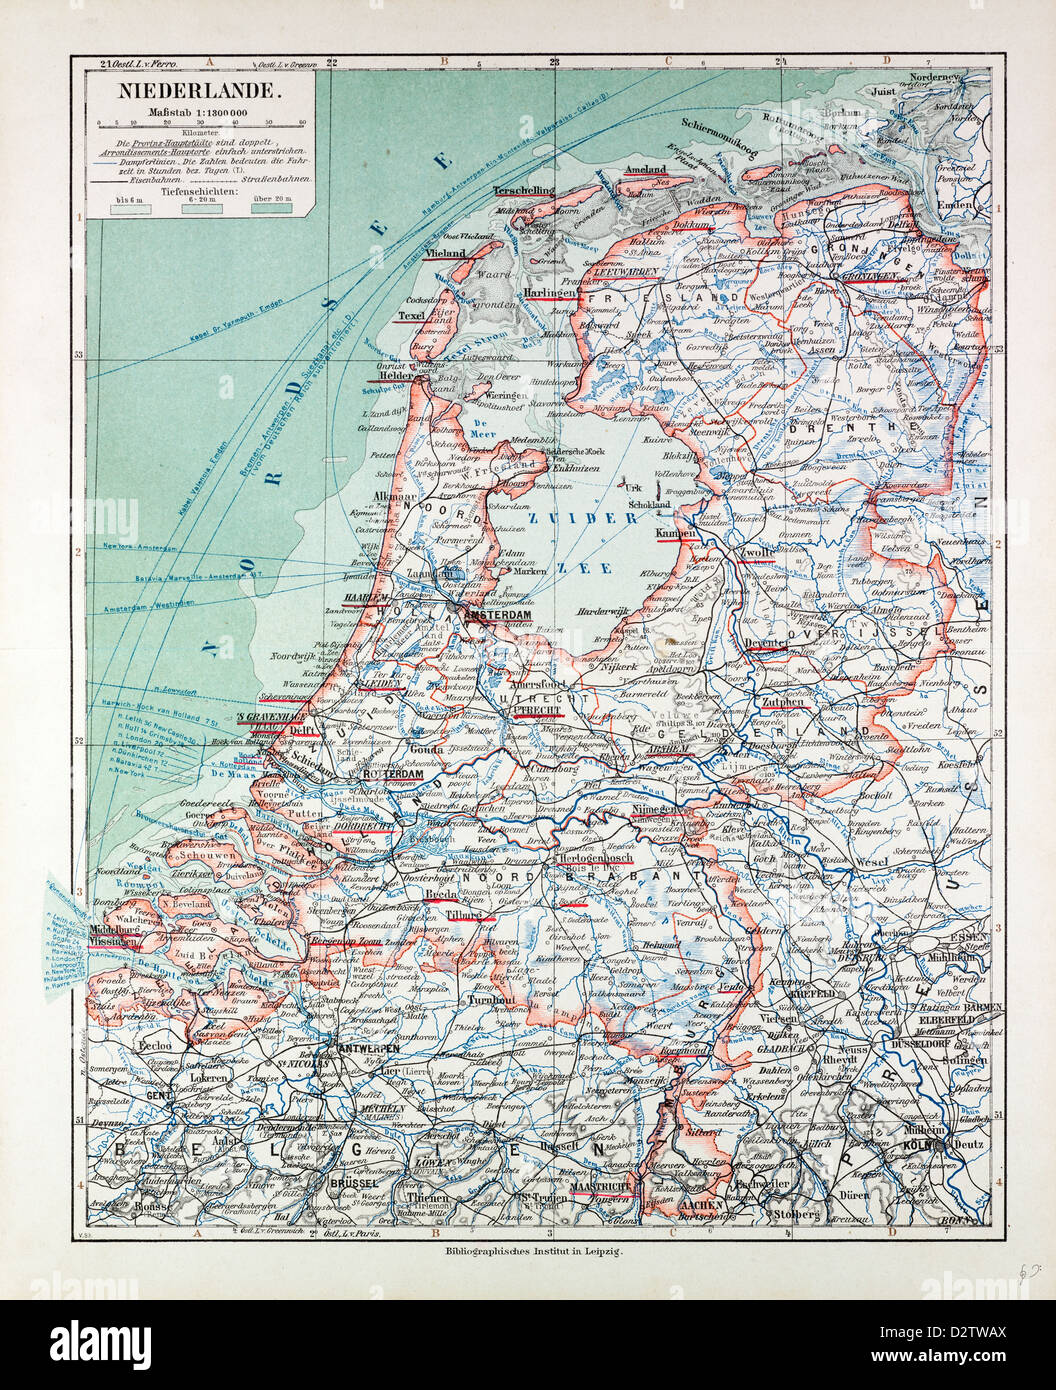 MAP OF THE NETHERLANDS 1899 - Stock Image